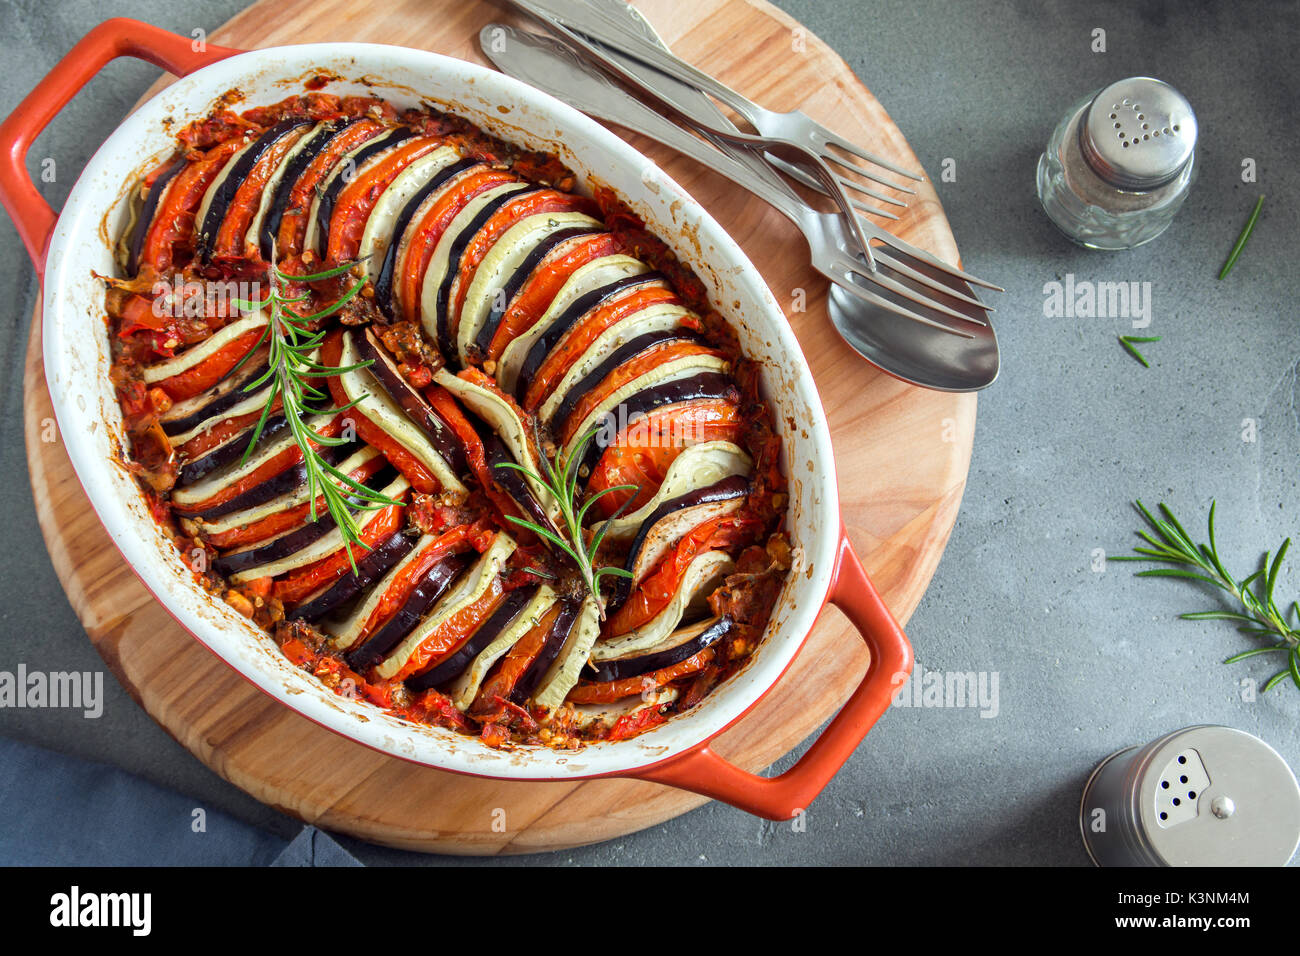 Ratatouille - traditional French Provencal vegetable dish cooked in oven. Diet vegetarian vegan food - Ratatouille Stock Photo